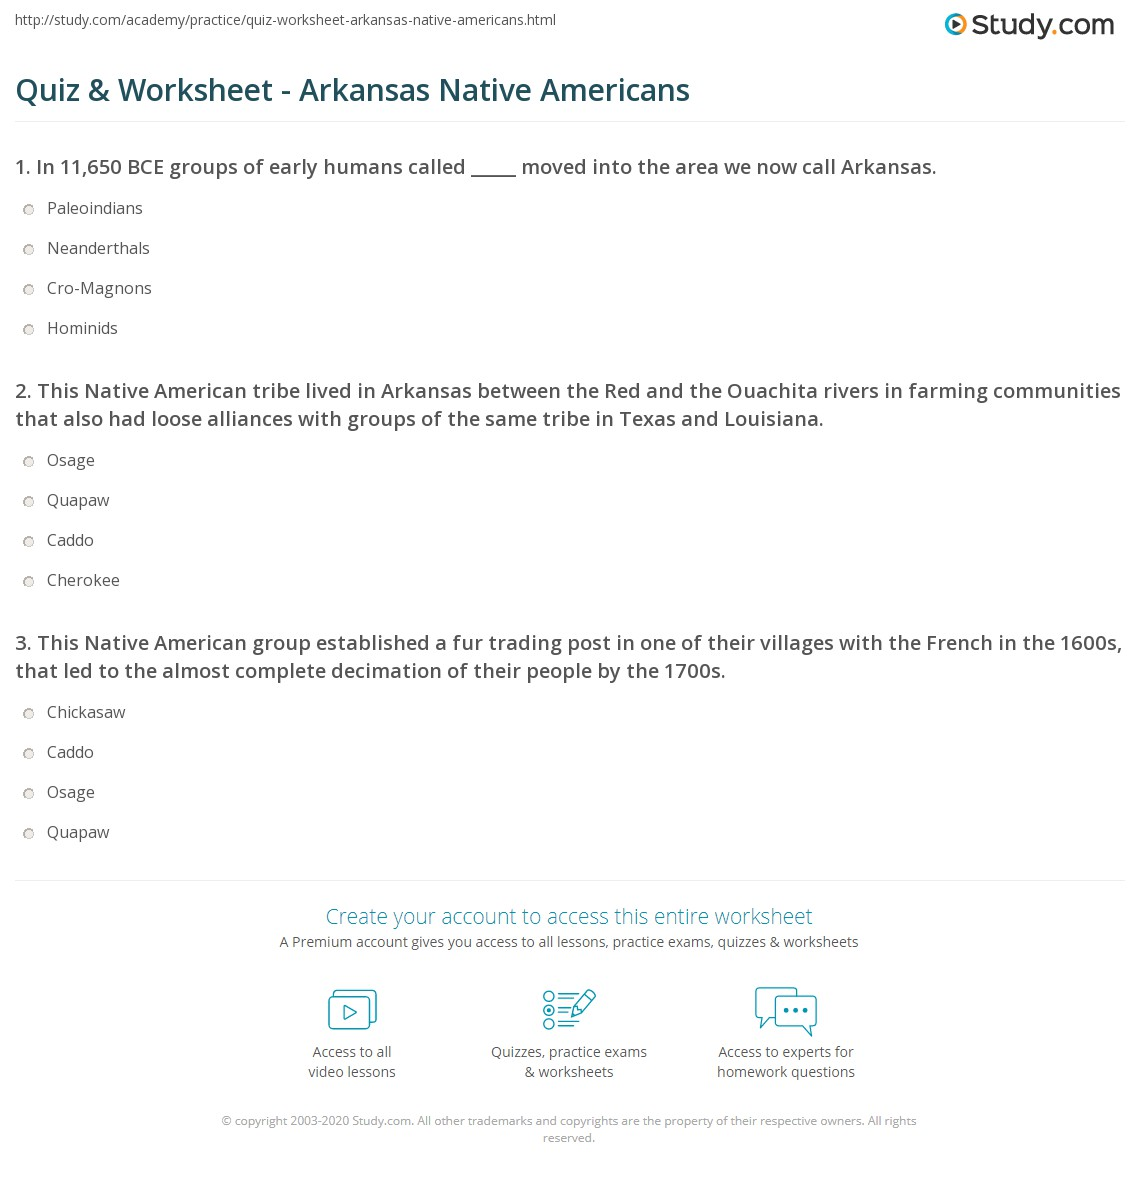 worksheet Native American Worksheets quiz worksheet arkansas native americans study com this american tribe lived in between the red and ouachita rivers farming communities that also had loose alliances with